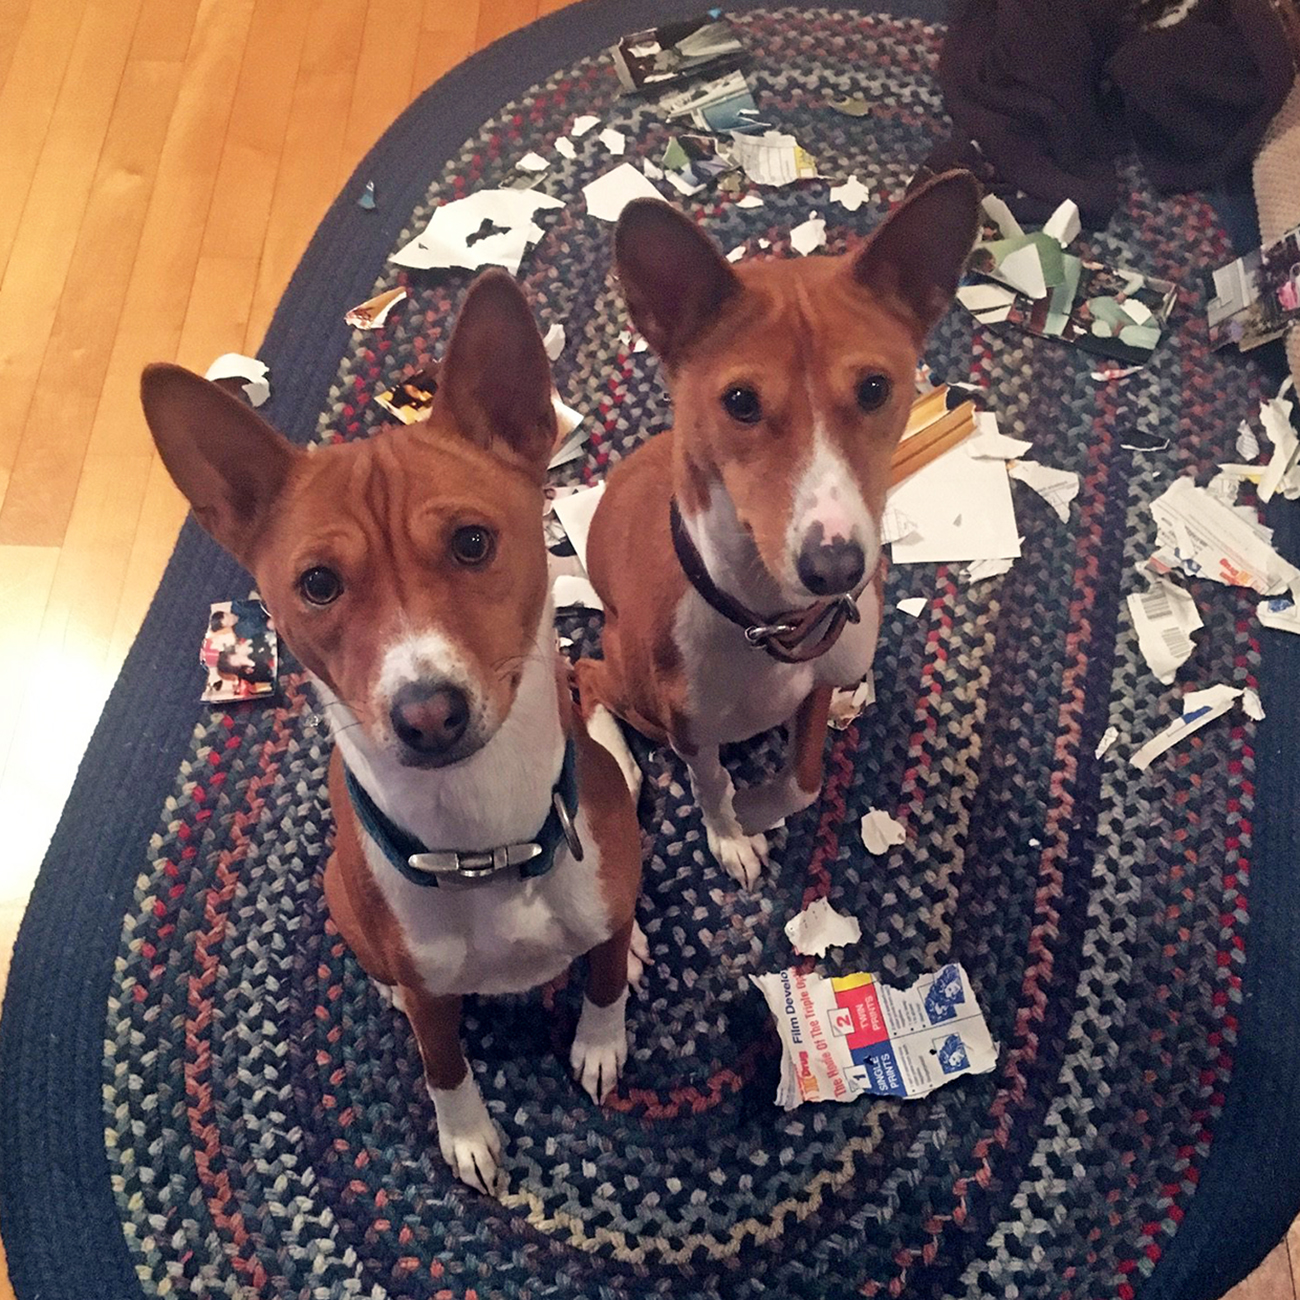 Twin dogs surrounded by torn up mail and paper look up at camera